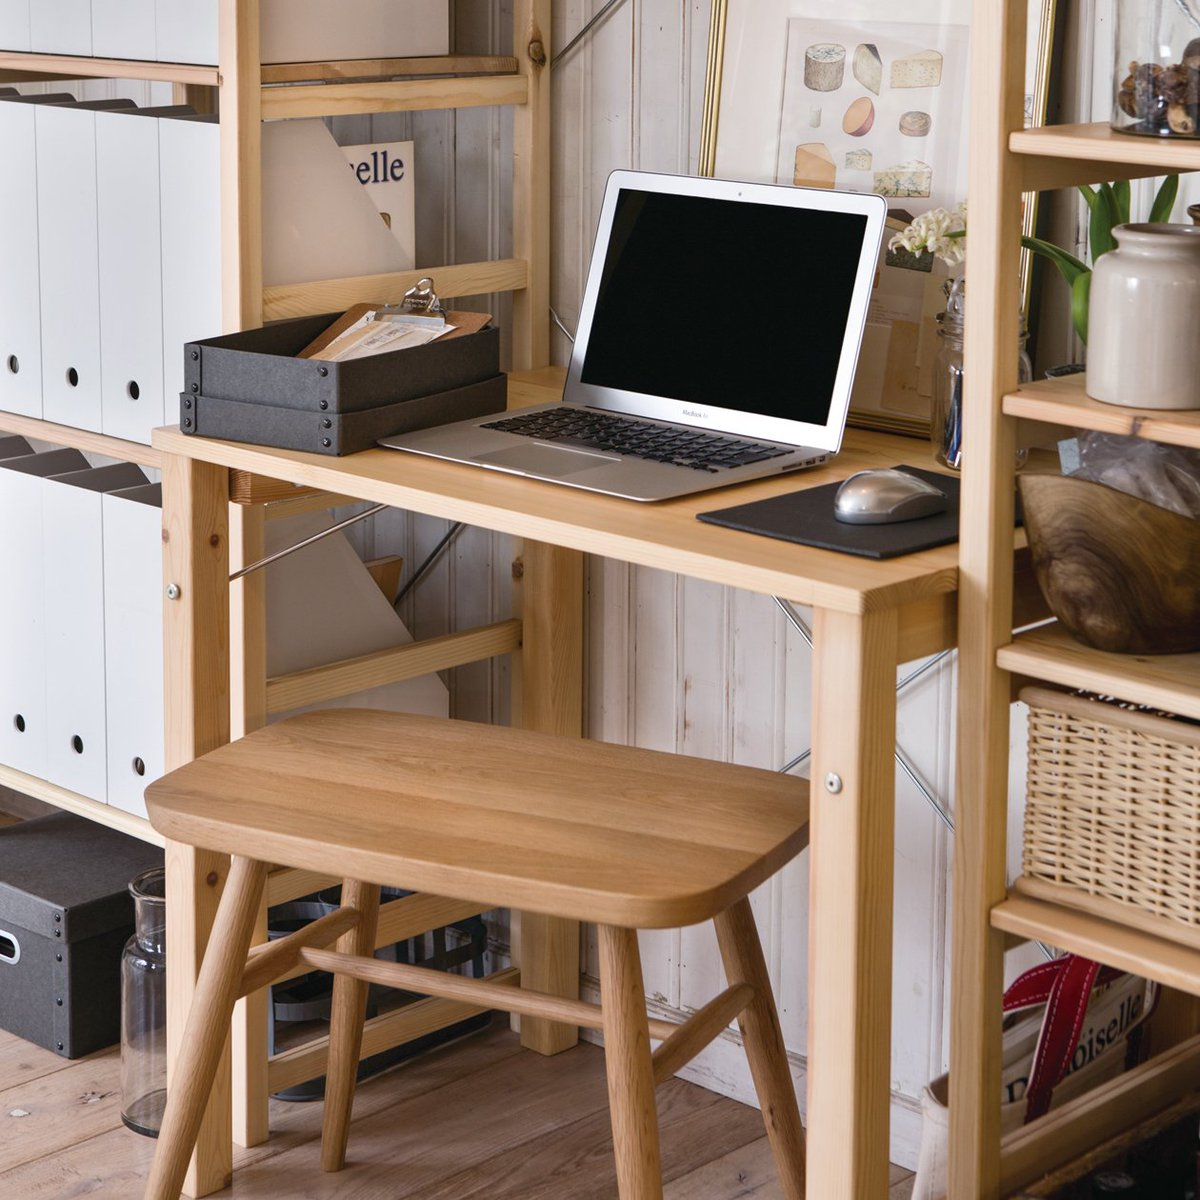 ... Table And As A Desk, If You Wanted To Sit Low On The Ground Or In A  Chair. 20% OFF At MUJI USA Stores And Online Until Jan. 31st. *Limited  Quantity.